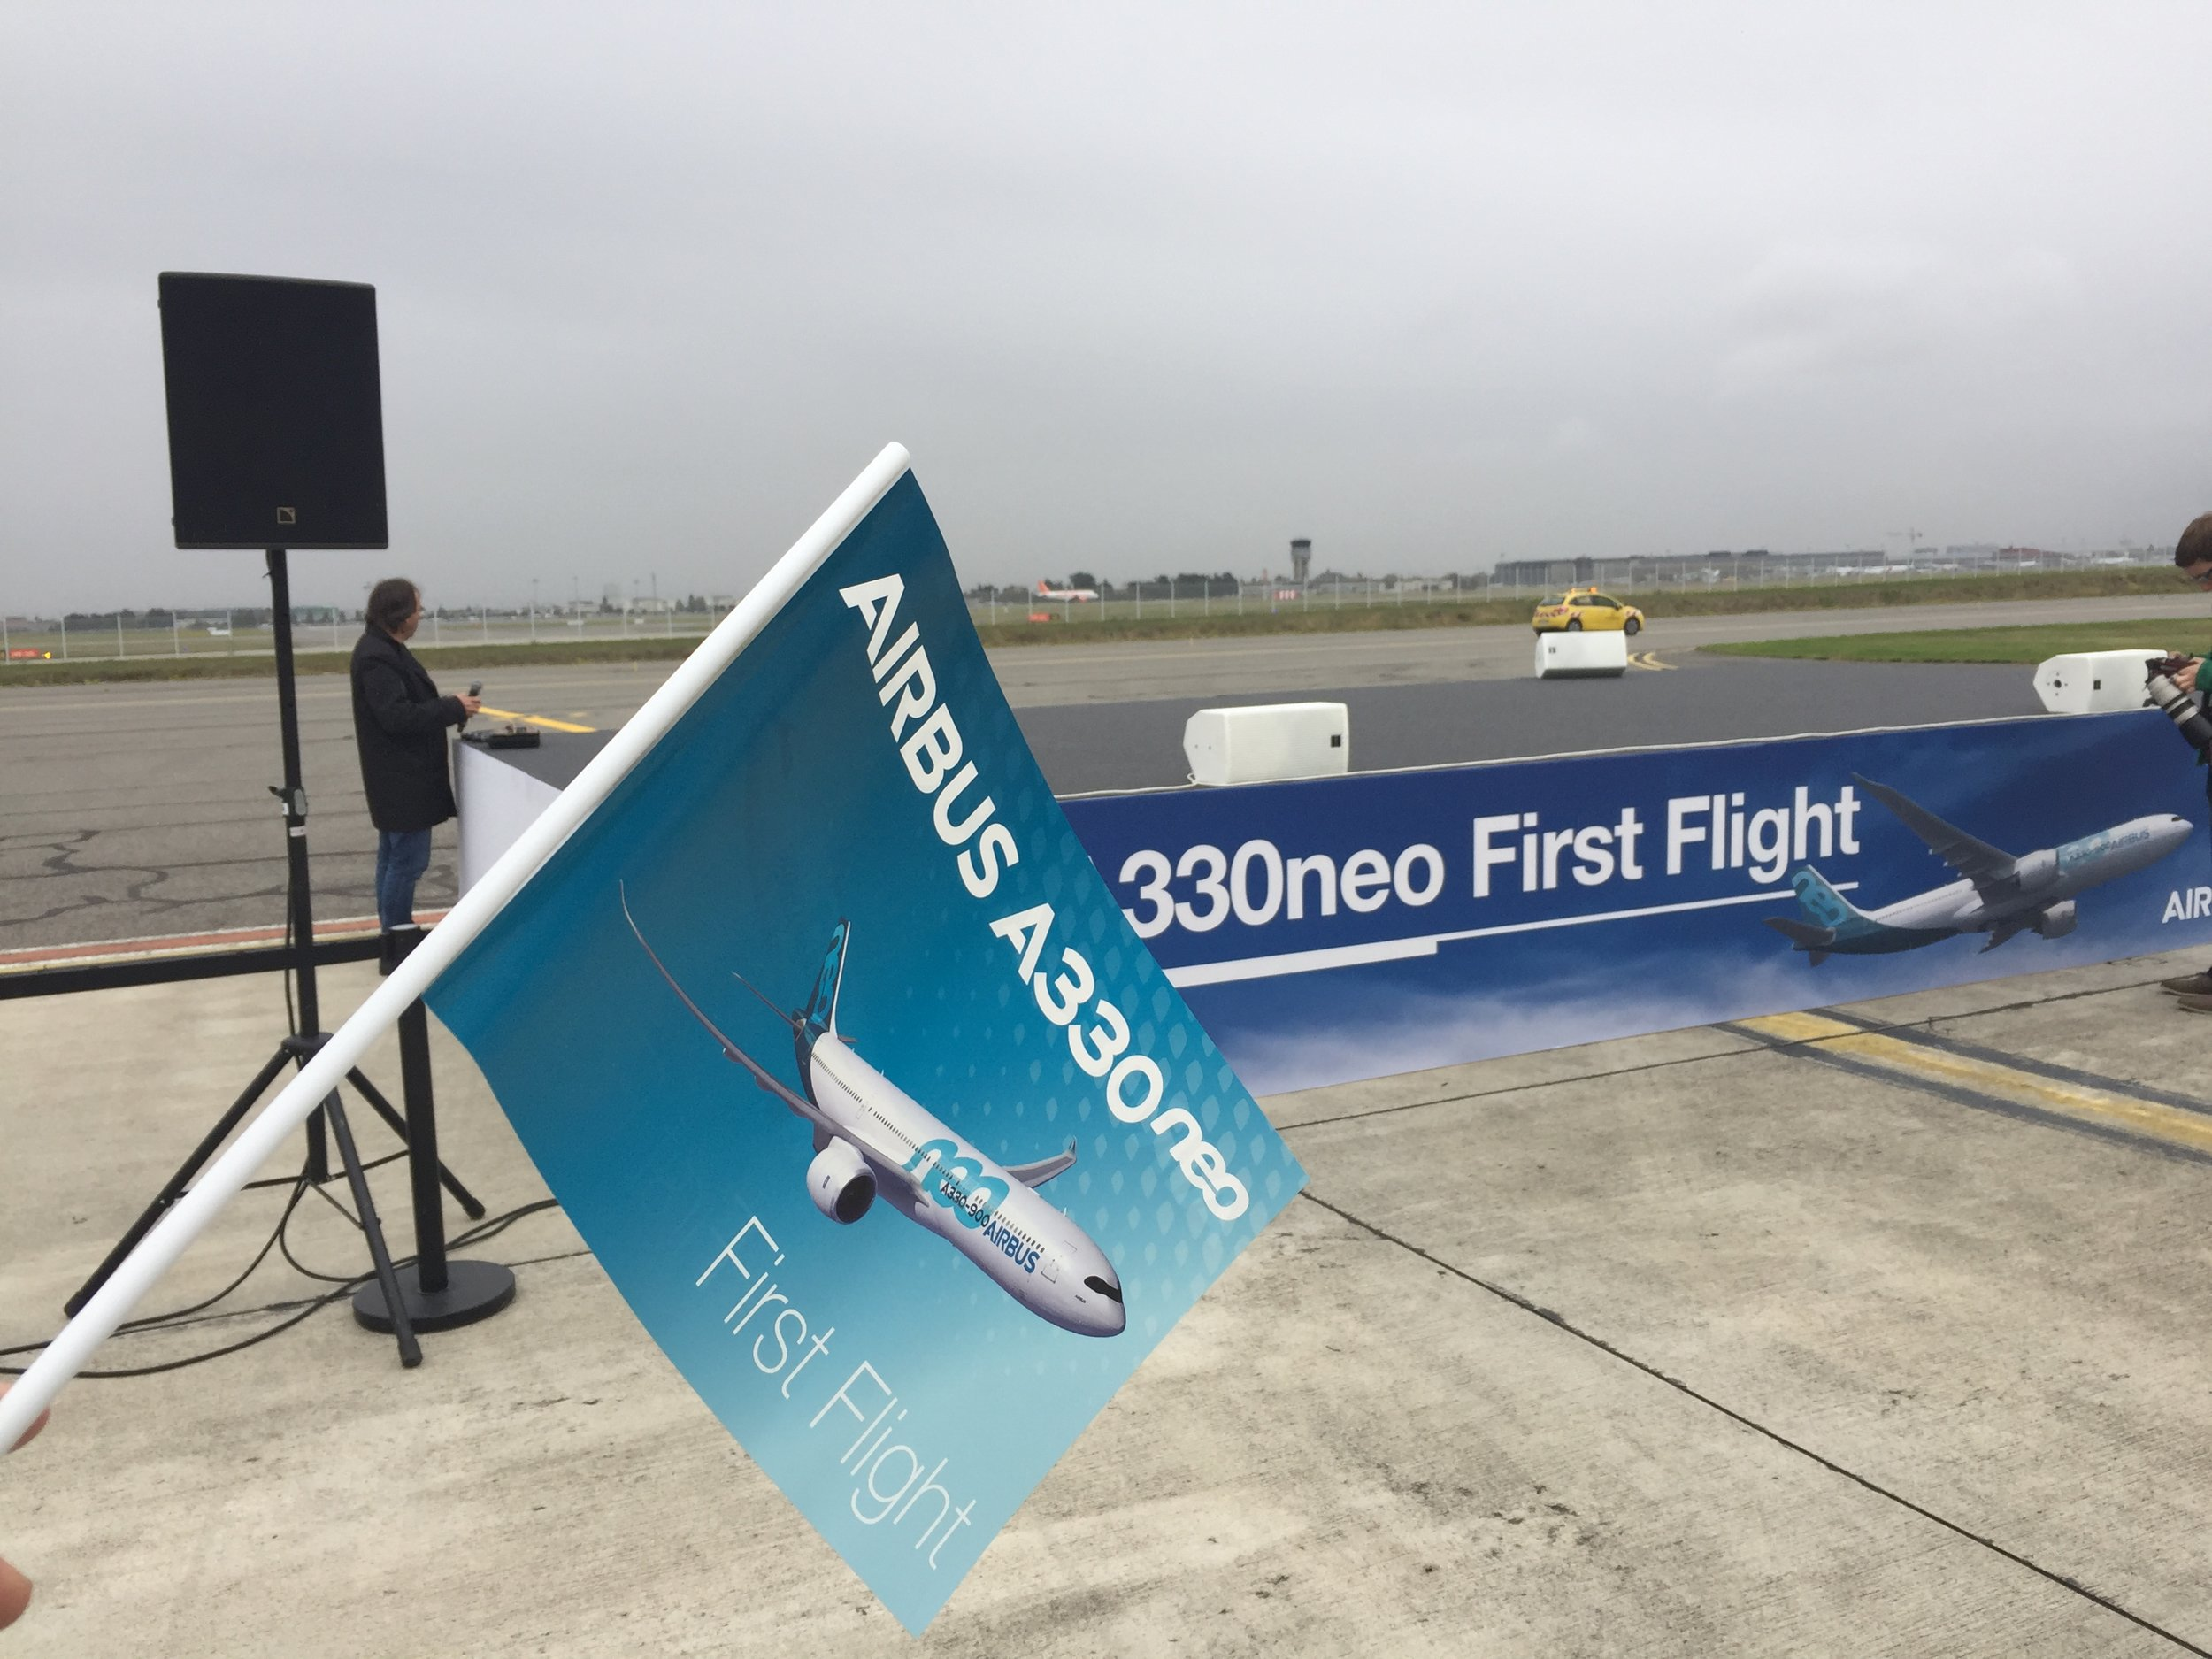 Airbus marked the occasion with full fanfare: media stage and plenty of welcome flags distributed among the guests, that included media as well as staff and suppliers